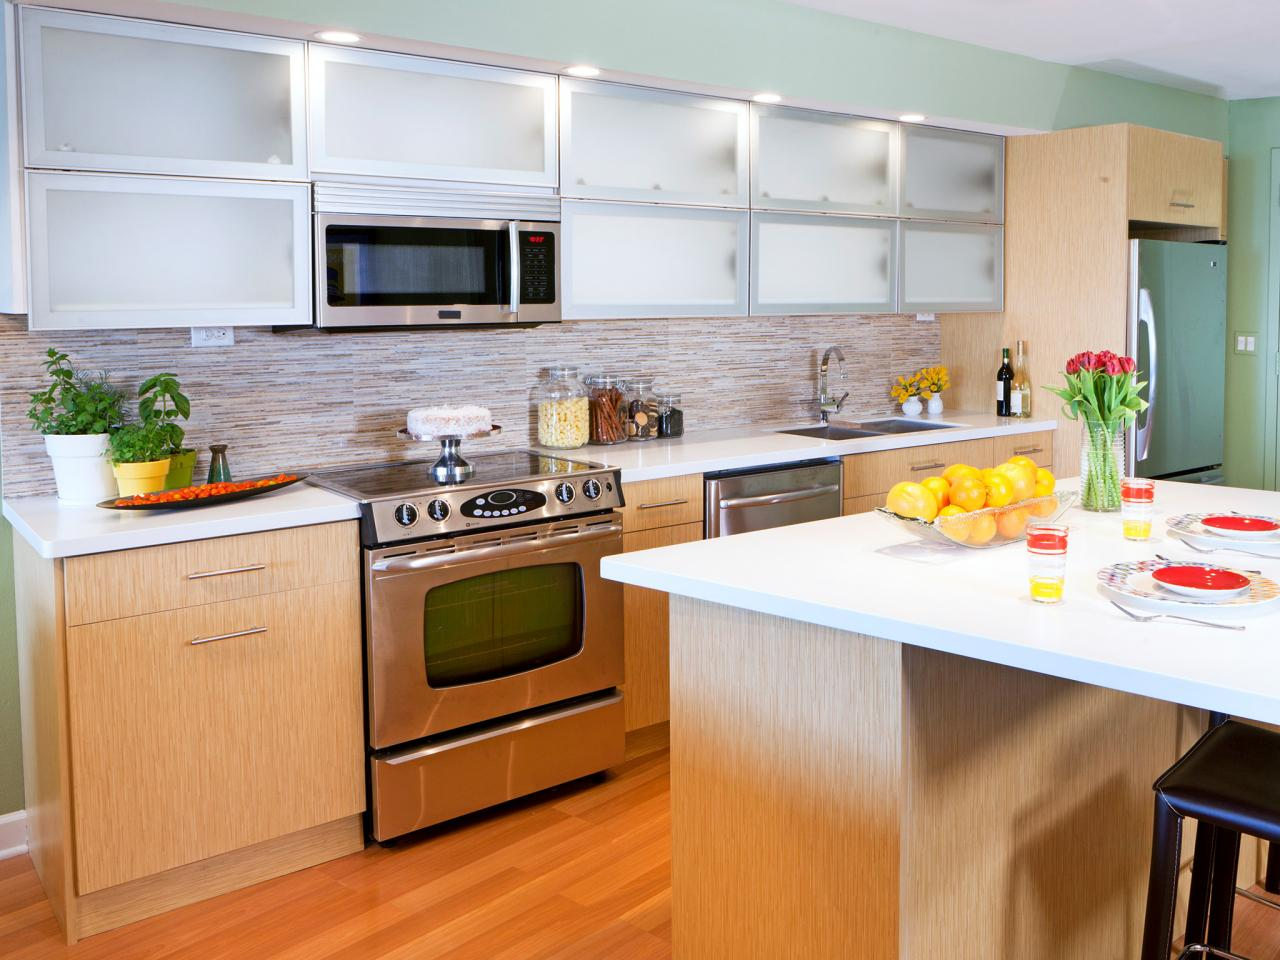 Stock kitchen cabinets pictures ideas tips from hgtv for Ready made kitchen units